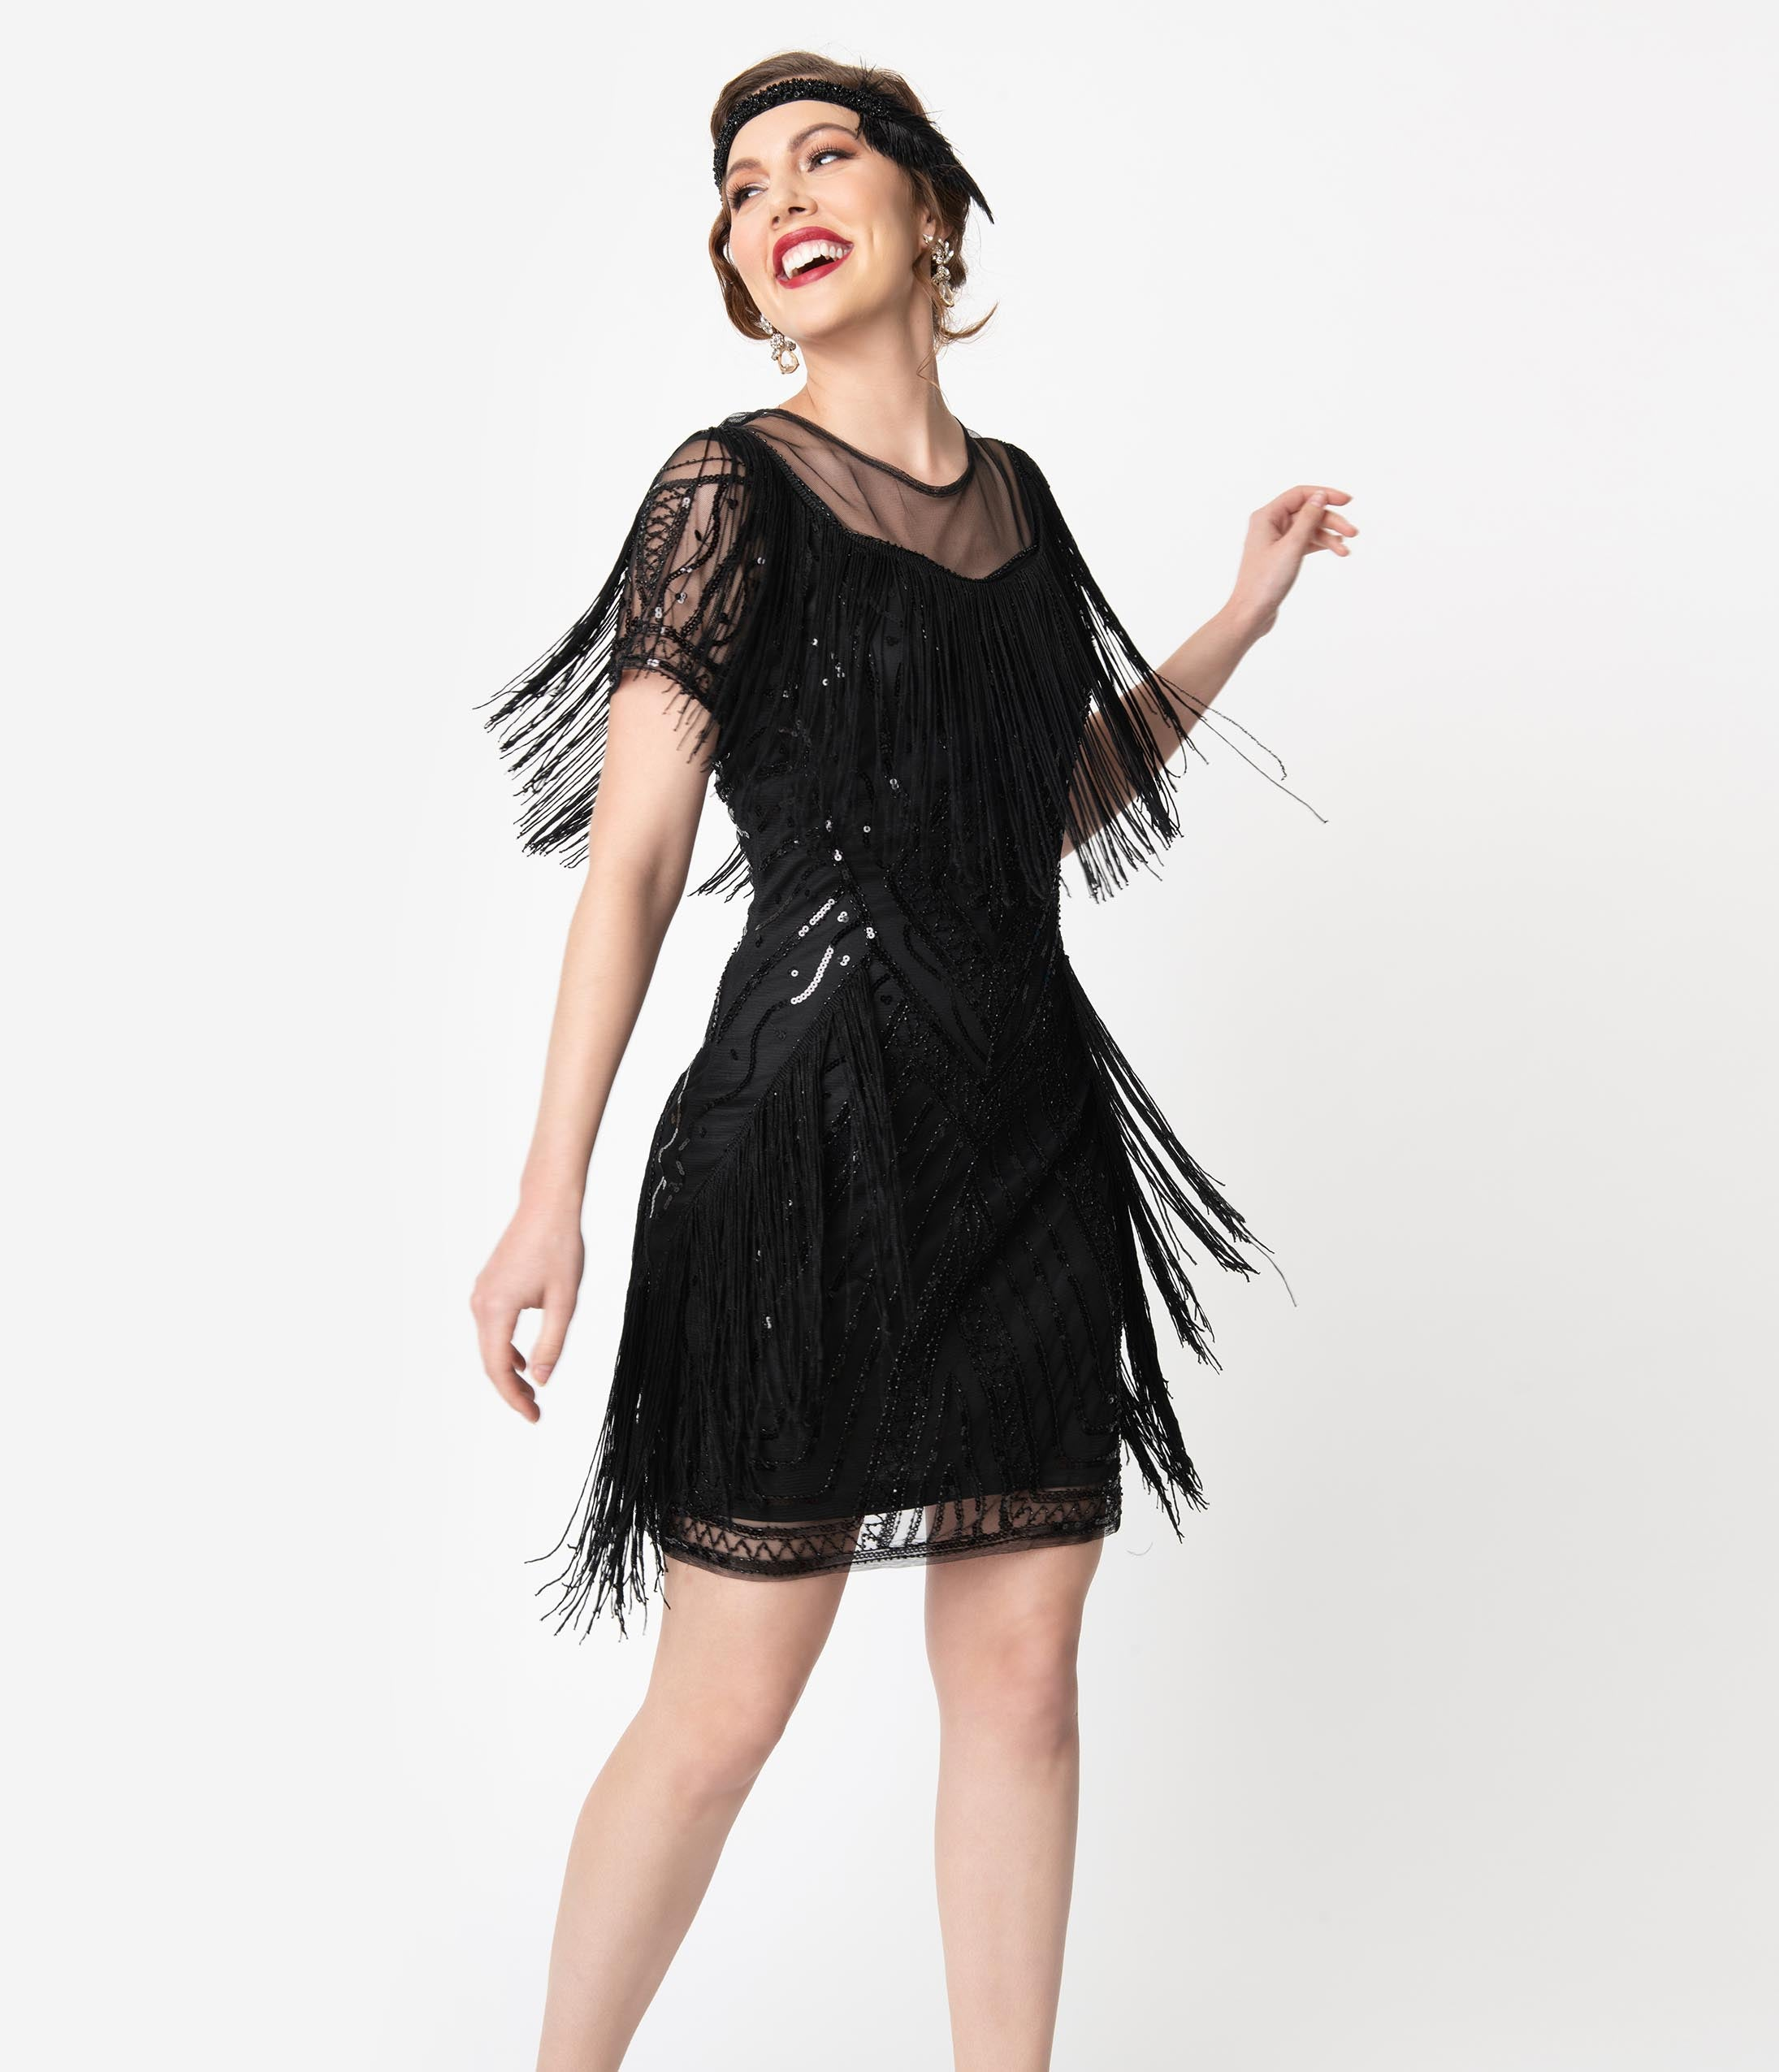 Flapper Dresses & Quality Flapper Costumes Unique Vintage Black Beaded Sleeve Fringe Le Havre Cocktail Flapper Dress $98.00 AT vintagedancer.com